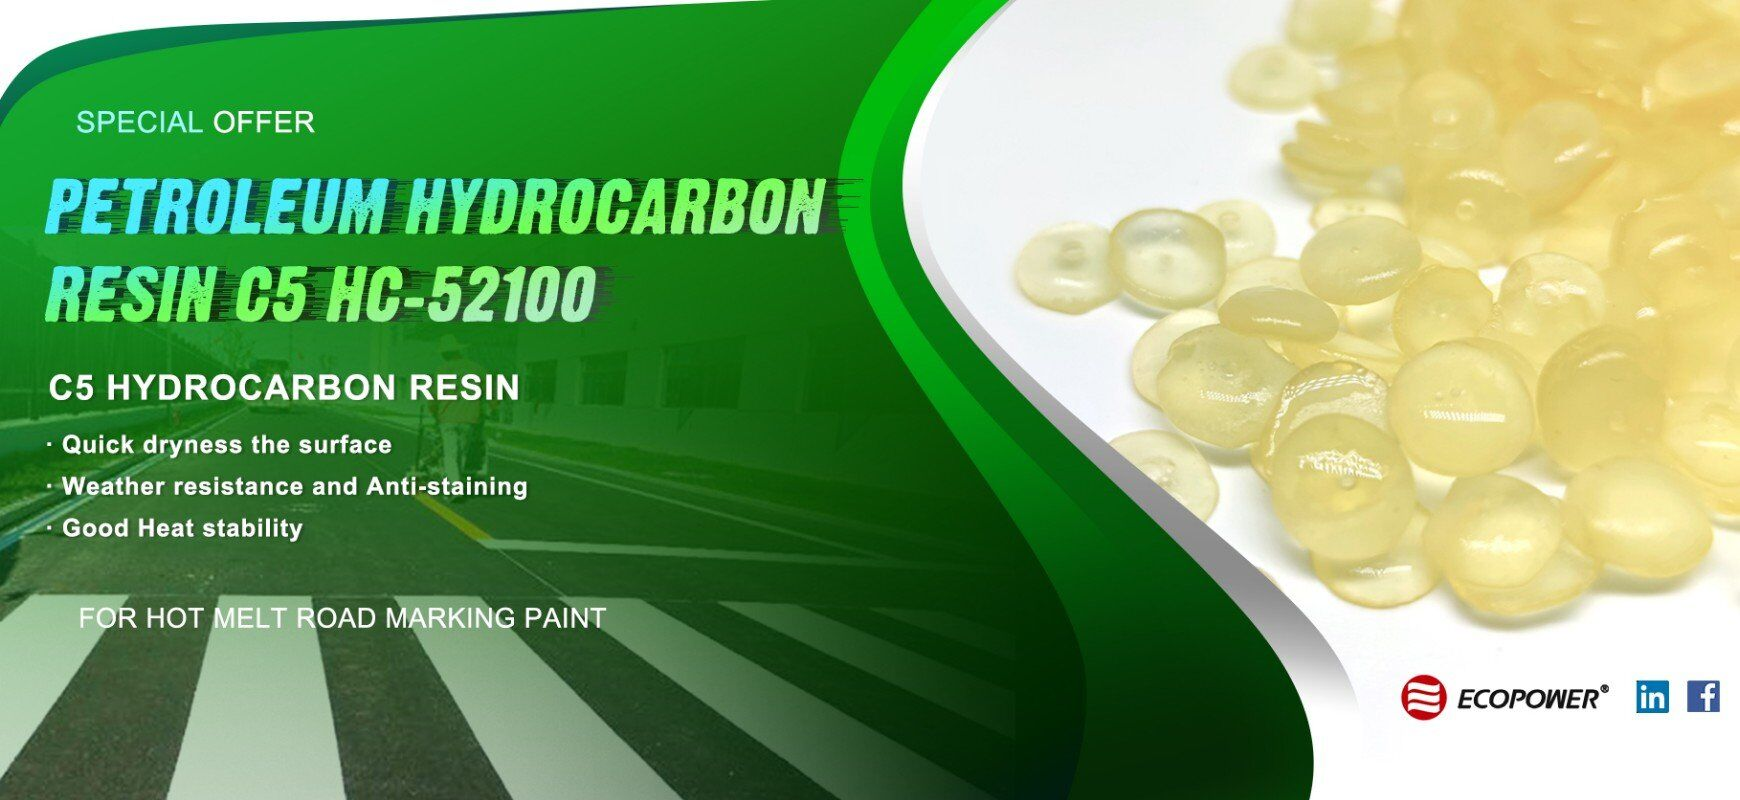 Petroleum Hydrocarbon Resin C5